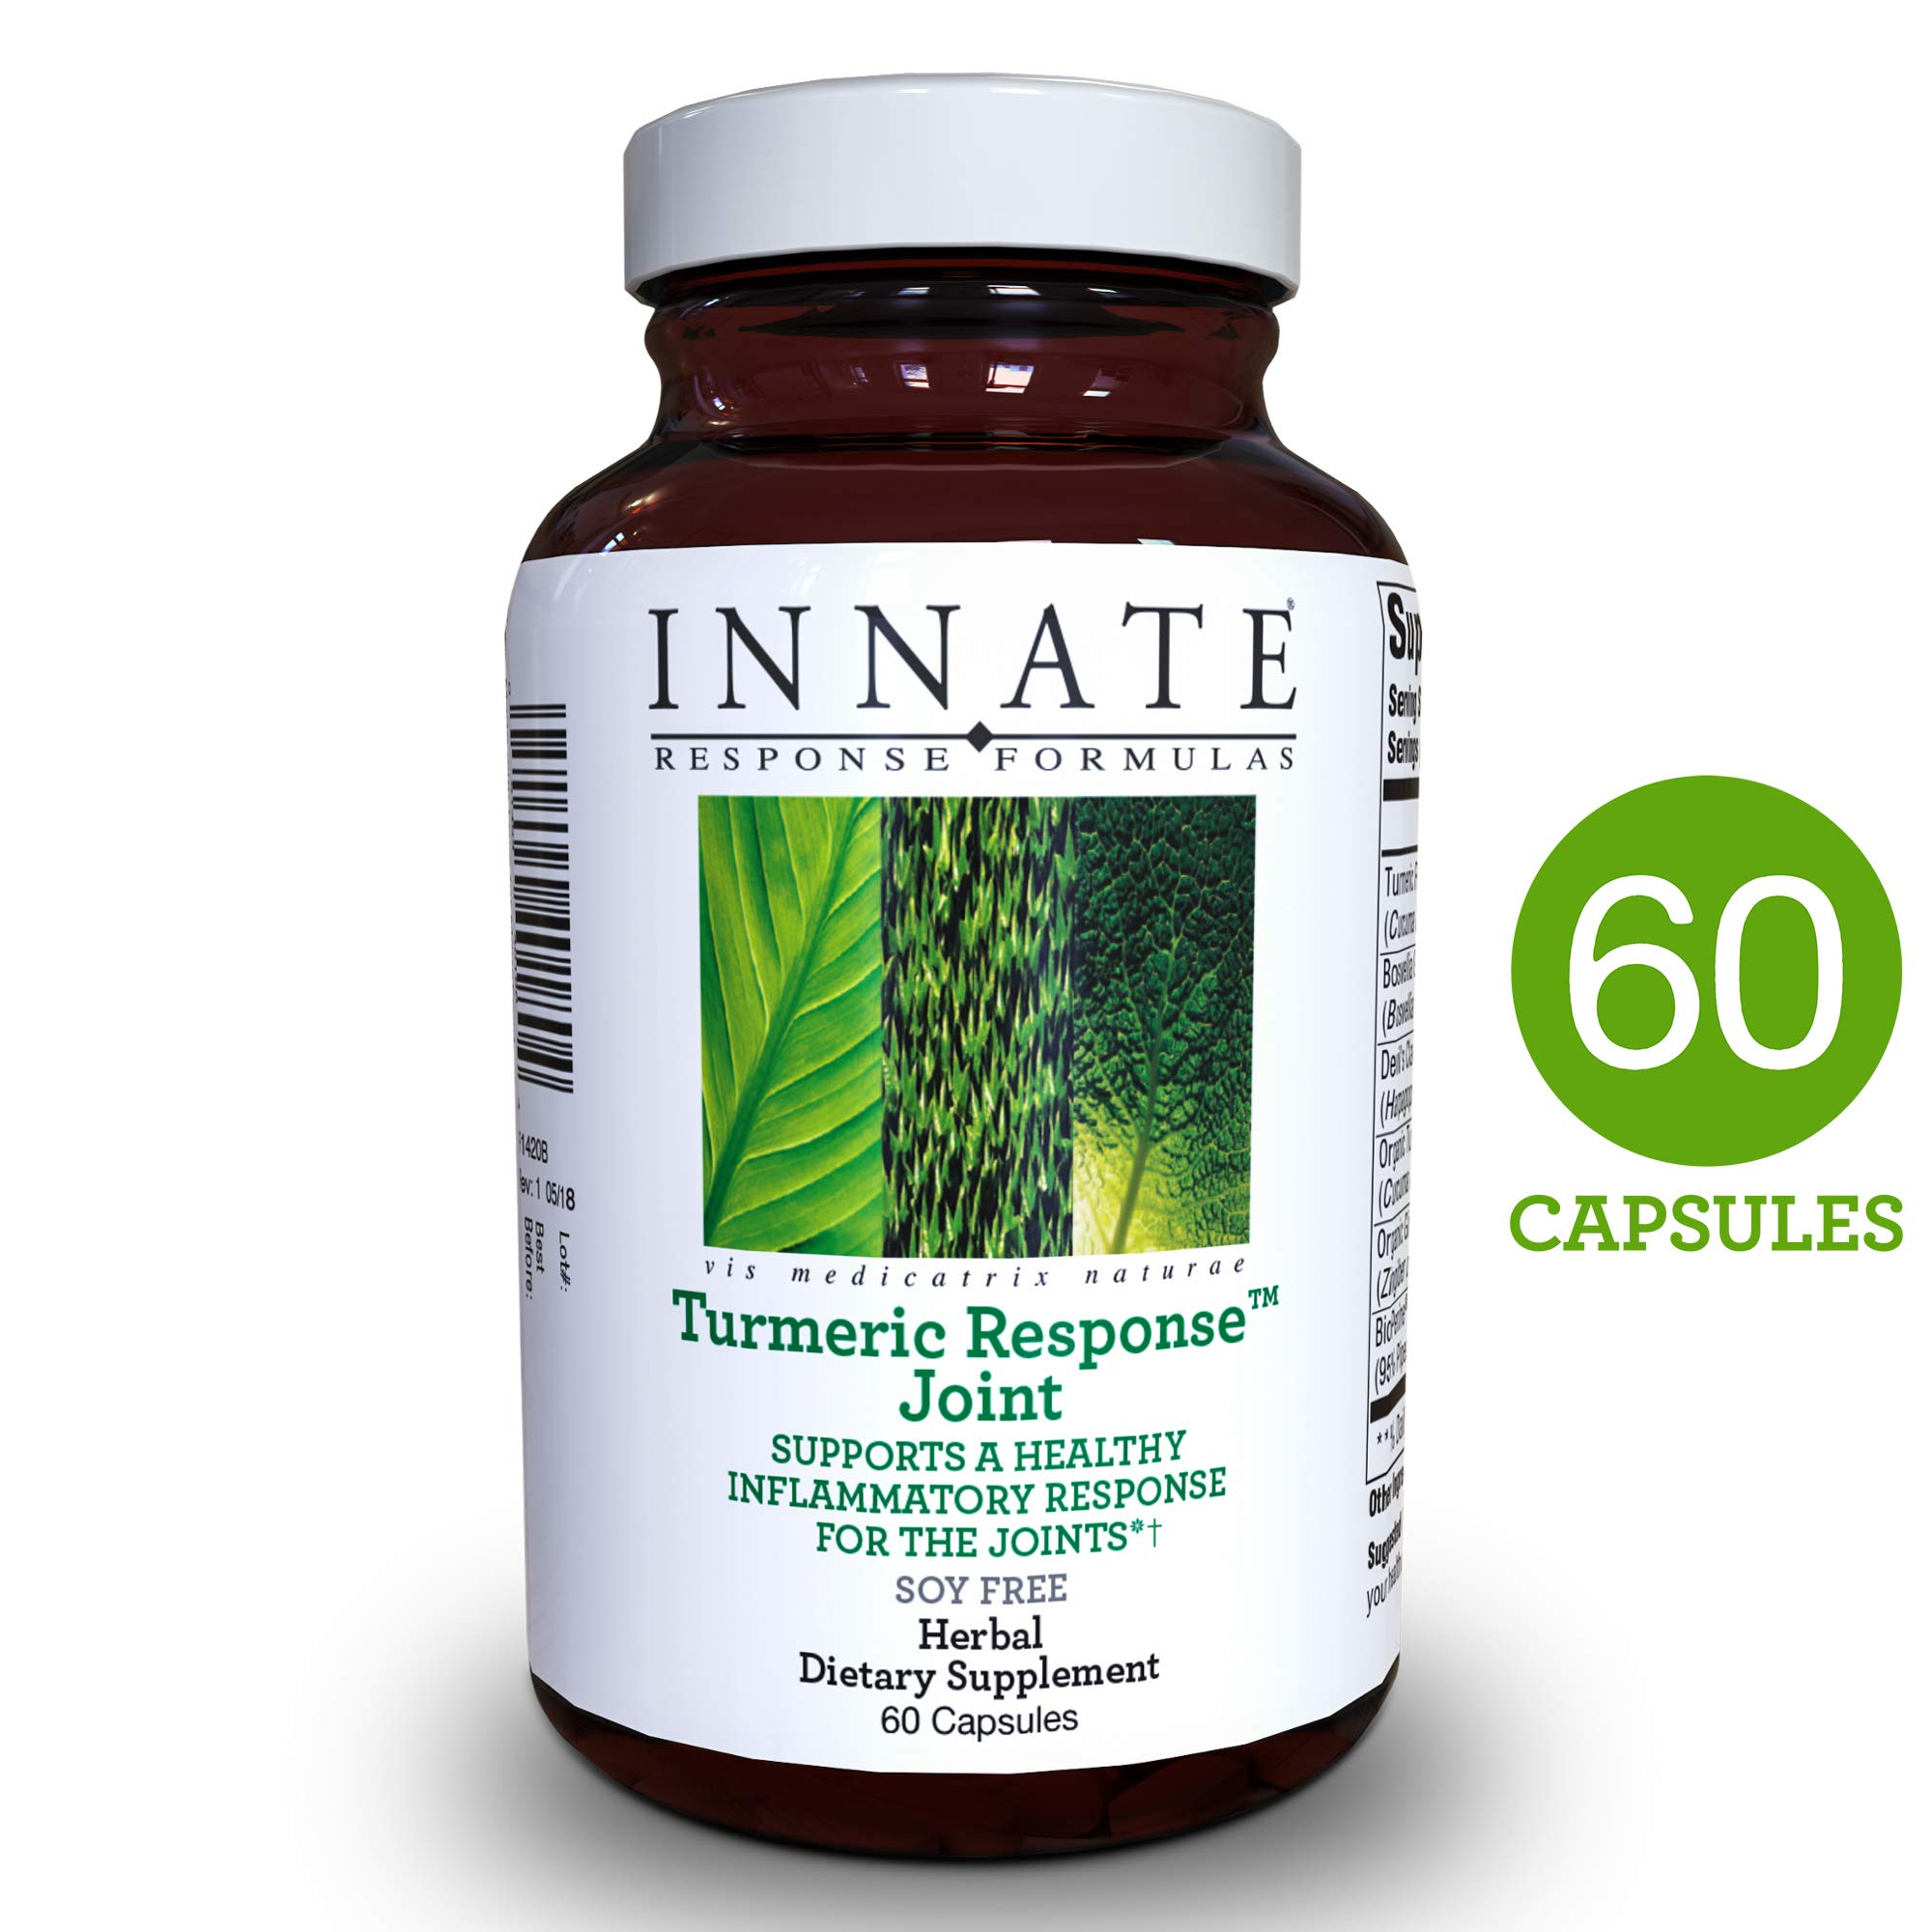 INNATE Response Formulas - Turmeric Response Joint, Support for Healthy Inflammatory Response in The Joints with BioPerine Black Pepper Fruit Extract and Devil's Claw, 60 Capsules